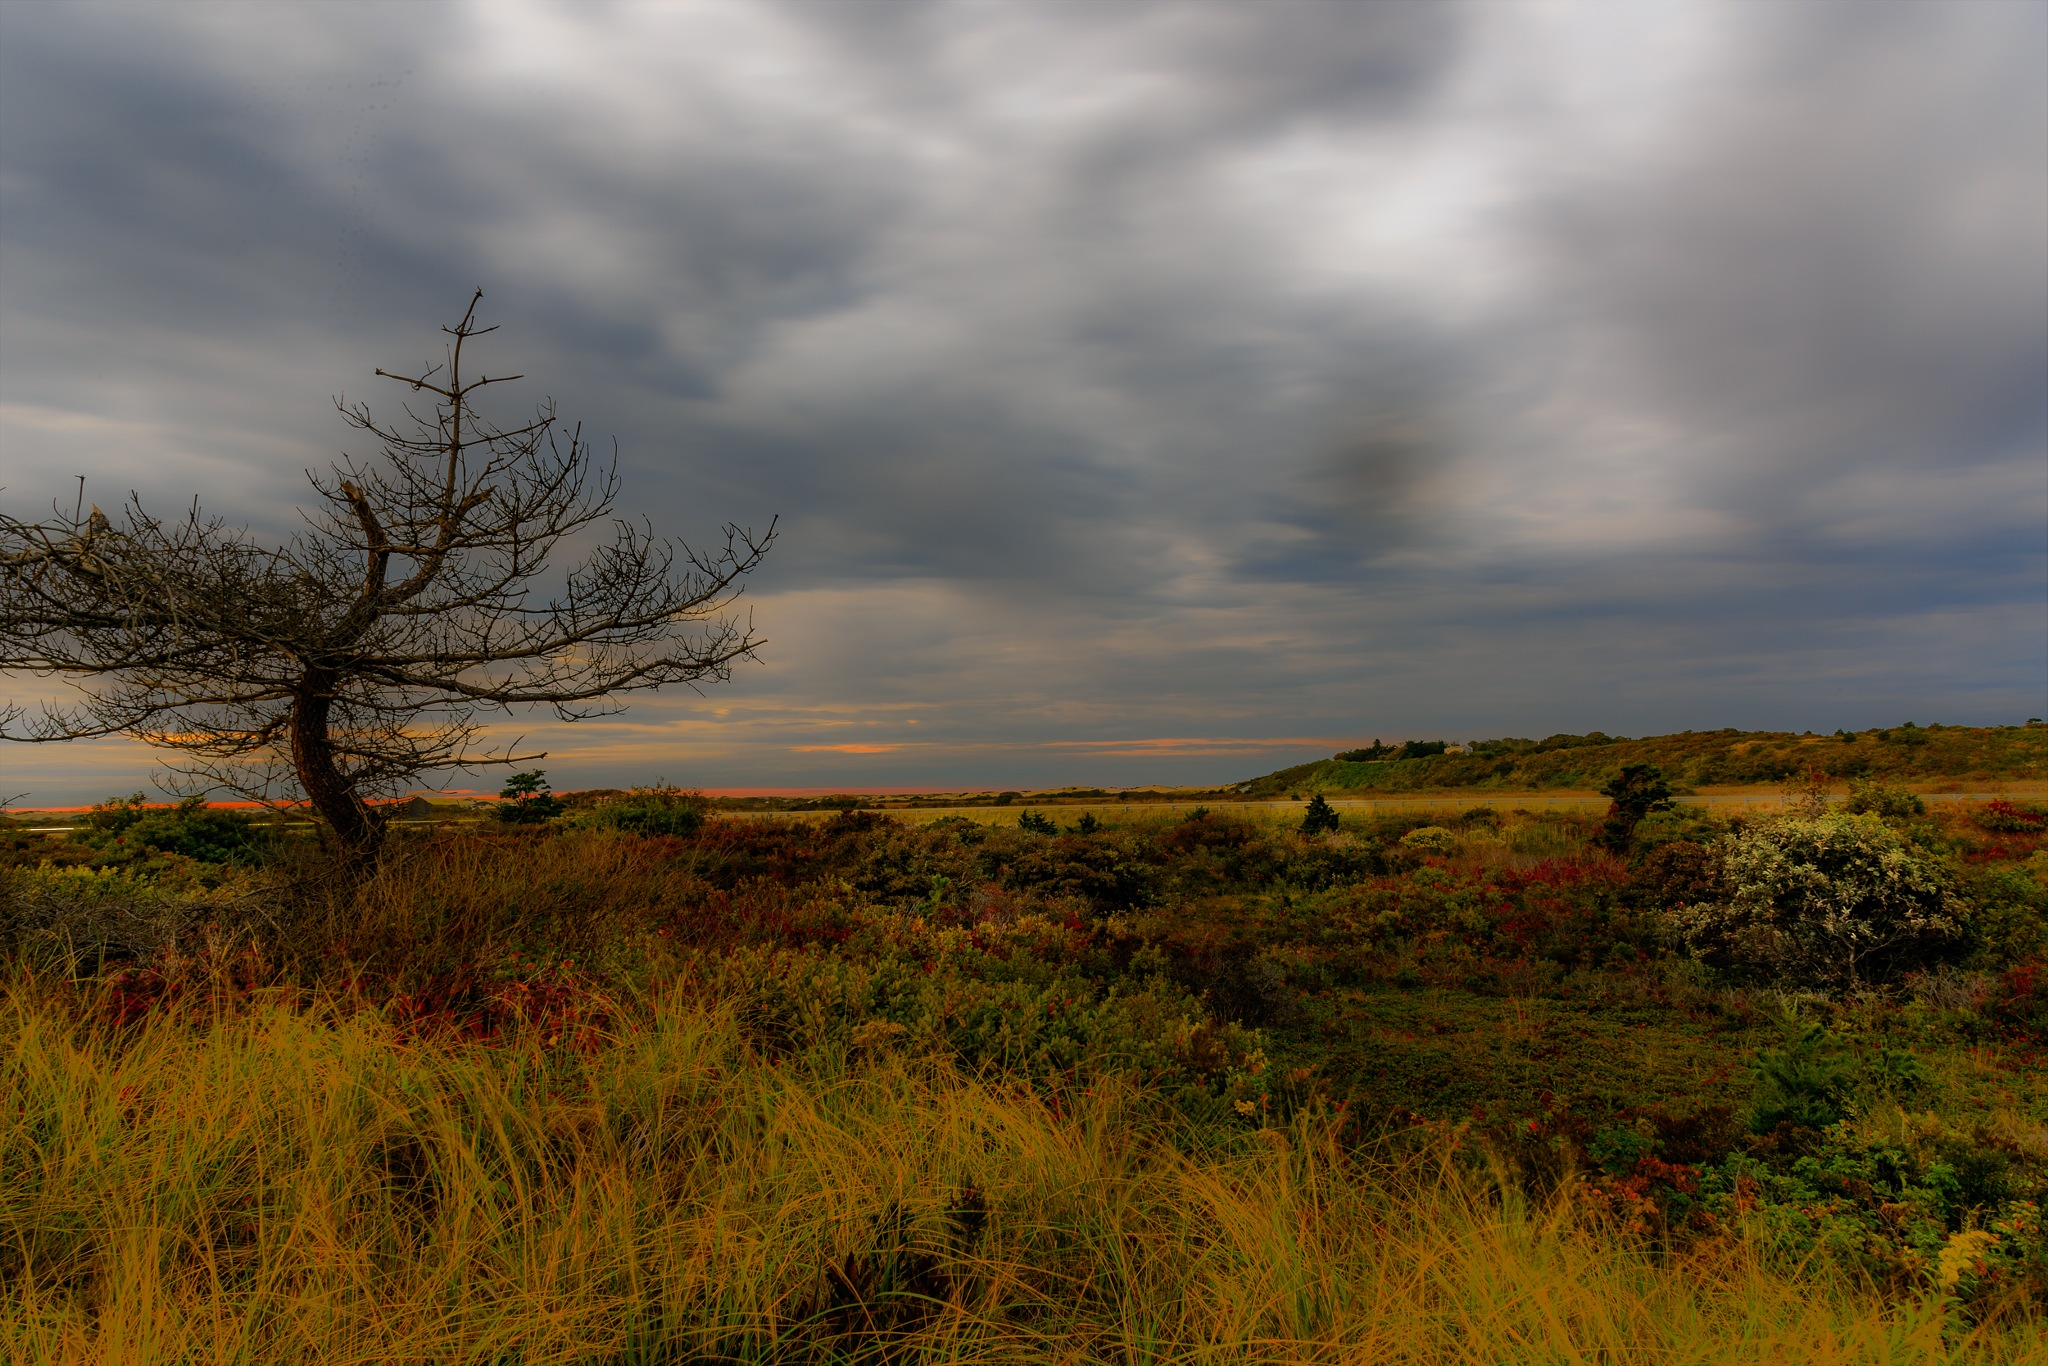 Dusk at the Grasslands of High Head, Cape Cod by Steve Director